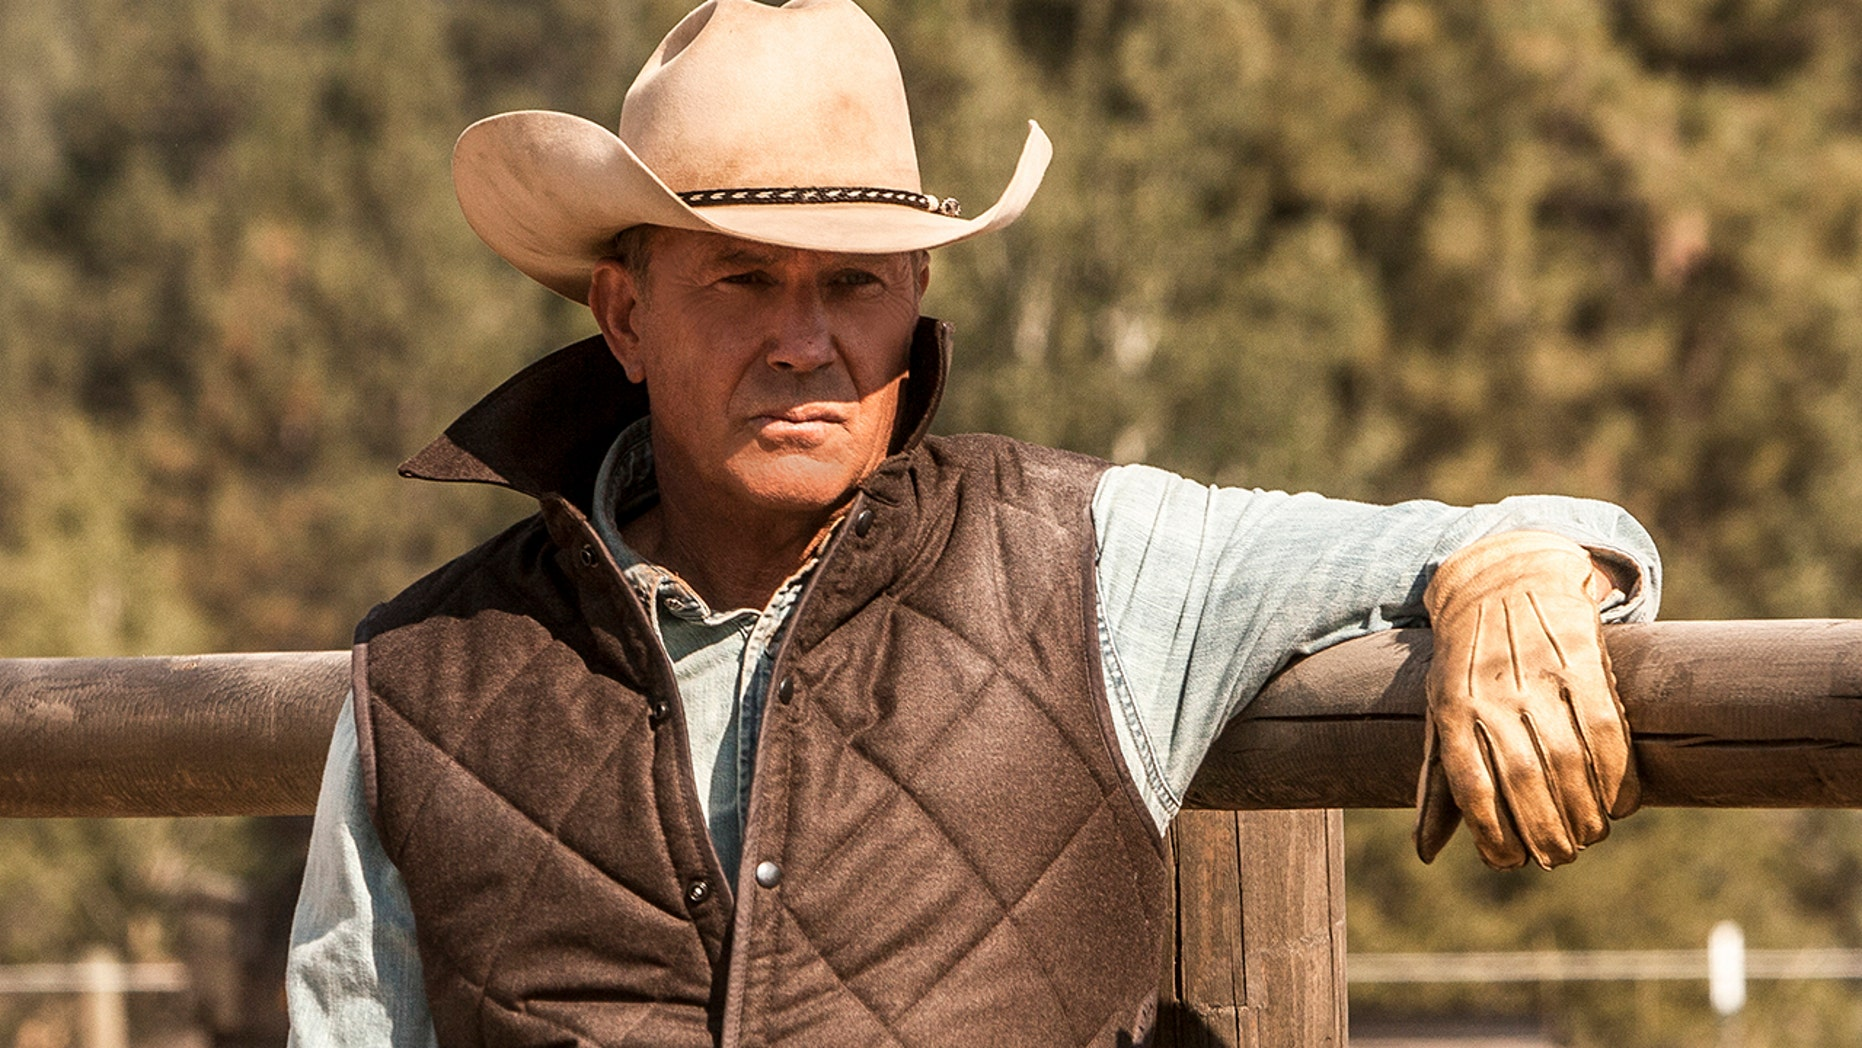 'Yellowstone,' a TV series starring Kevin Costner, has been accused of misusing animal carcasses by PETA.